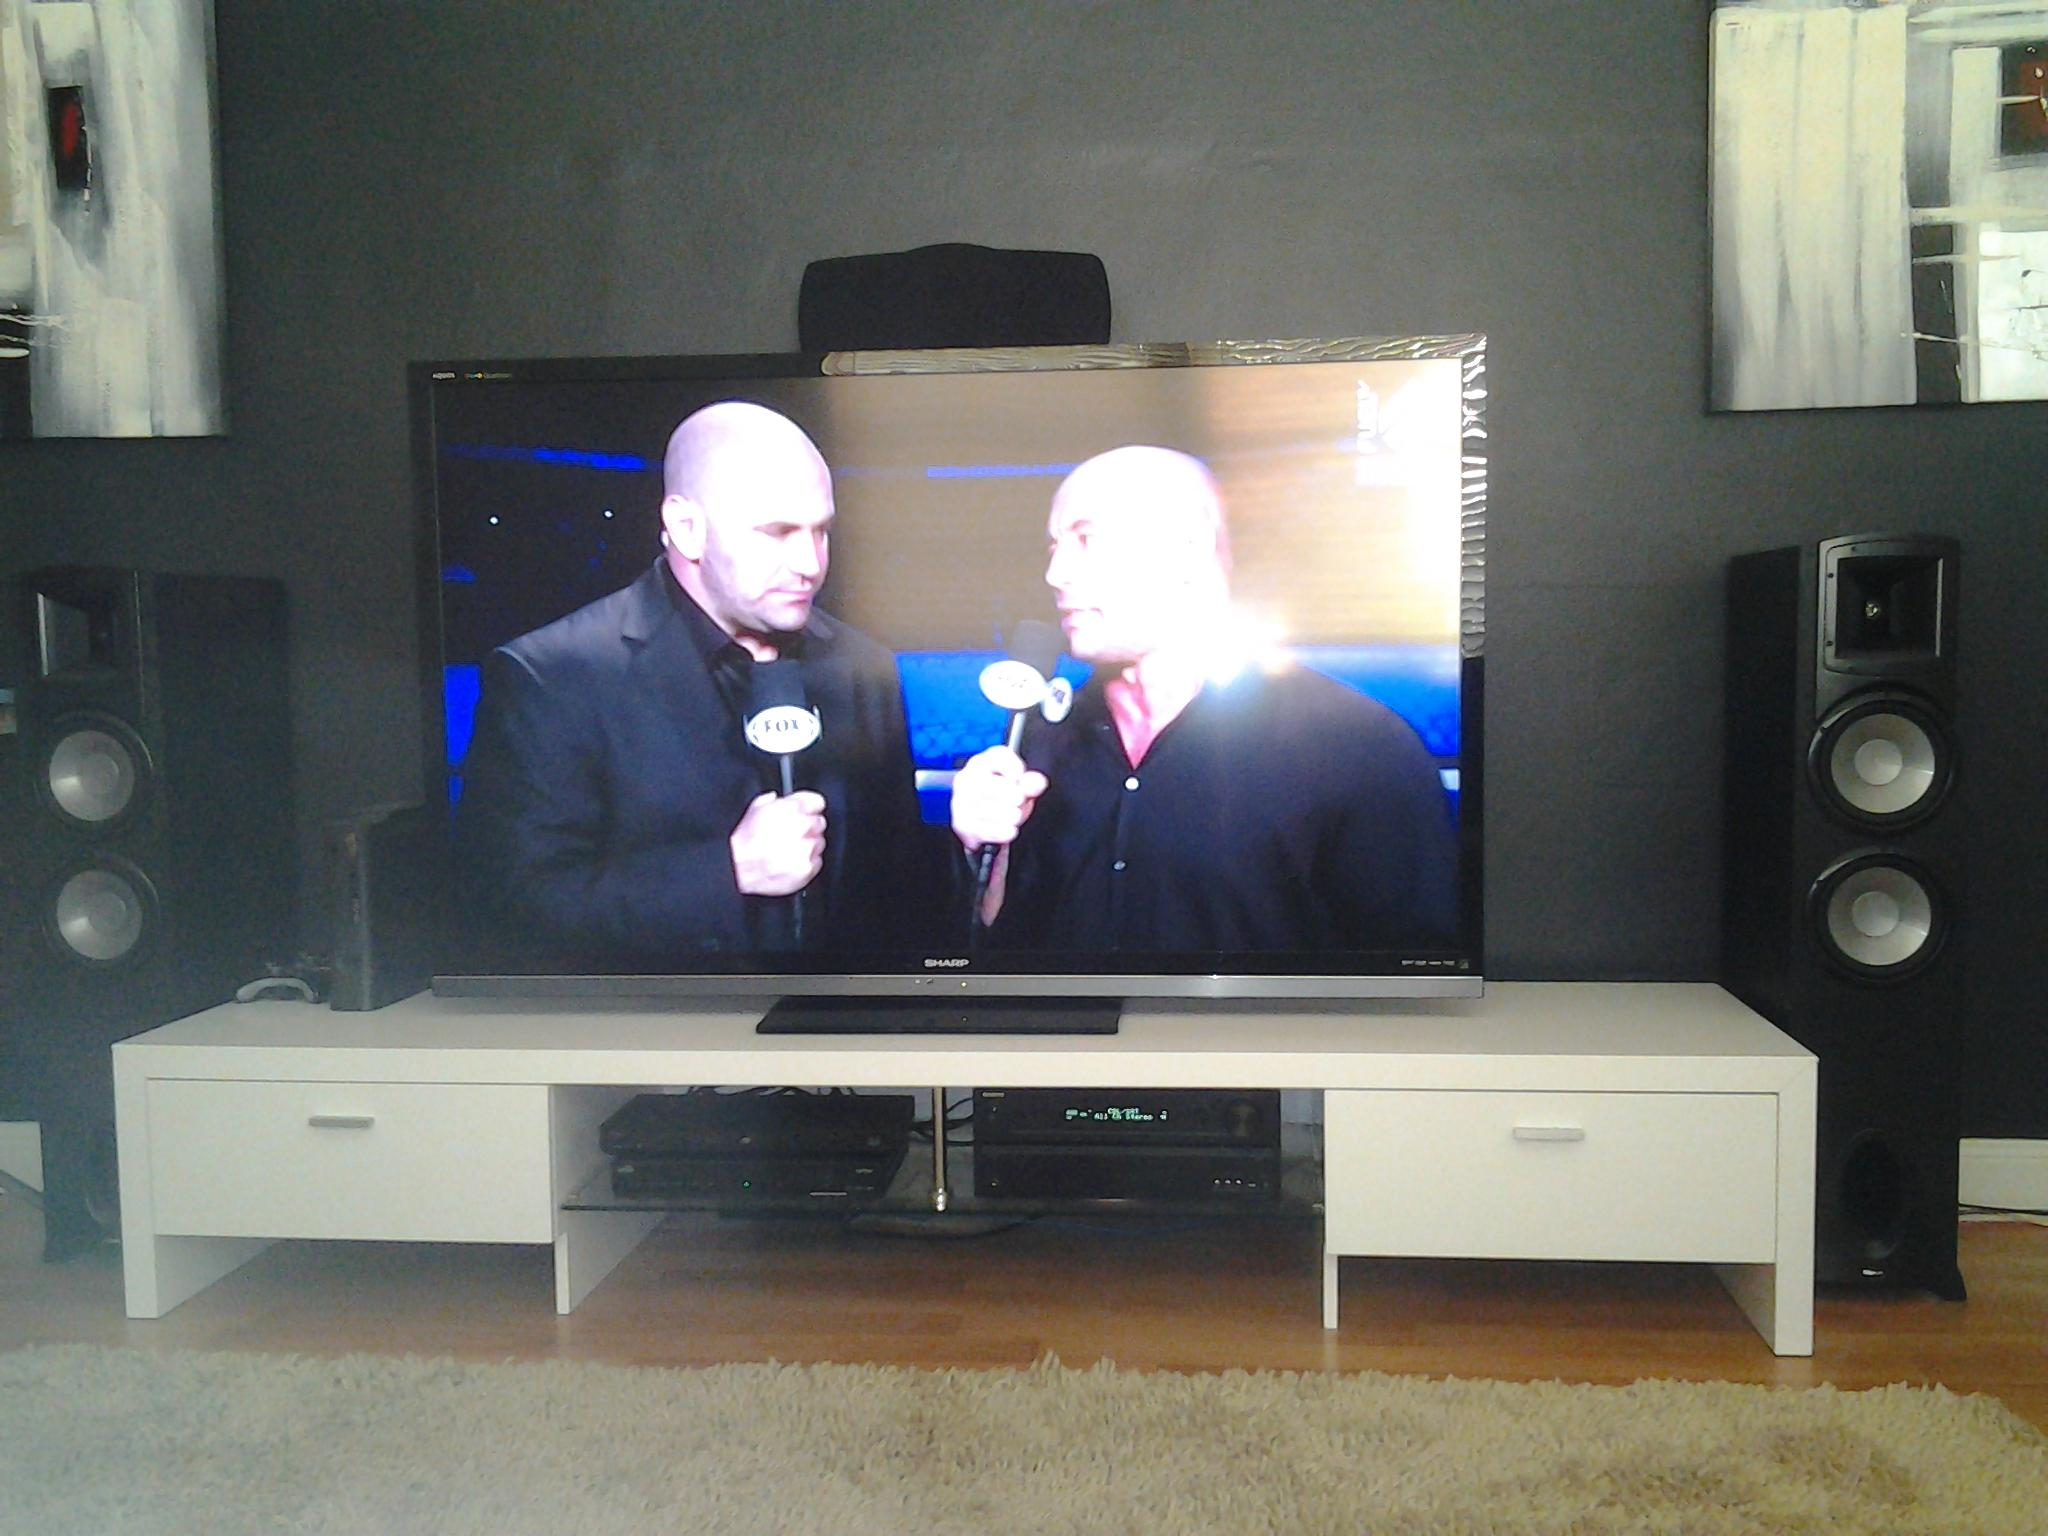 RT @wombatknackers: Rockin the #ufc152 thru the mighty klipsch speakers....@KlipschAudio http://t.co/xVnNTQqF